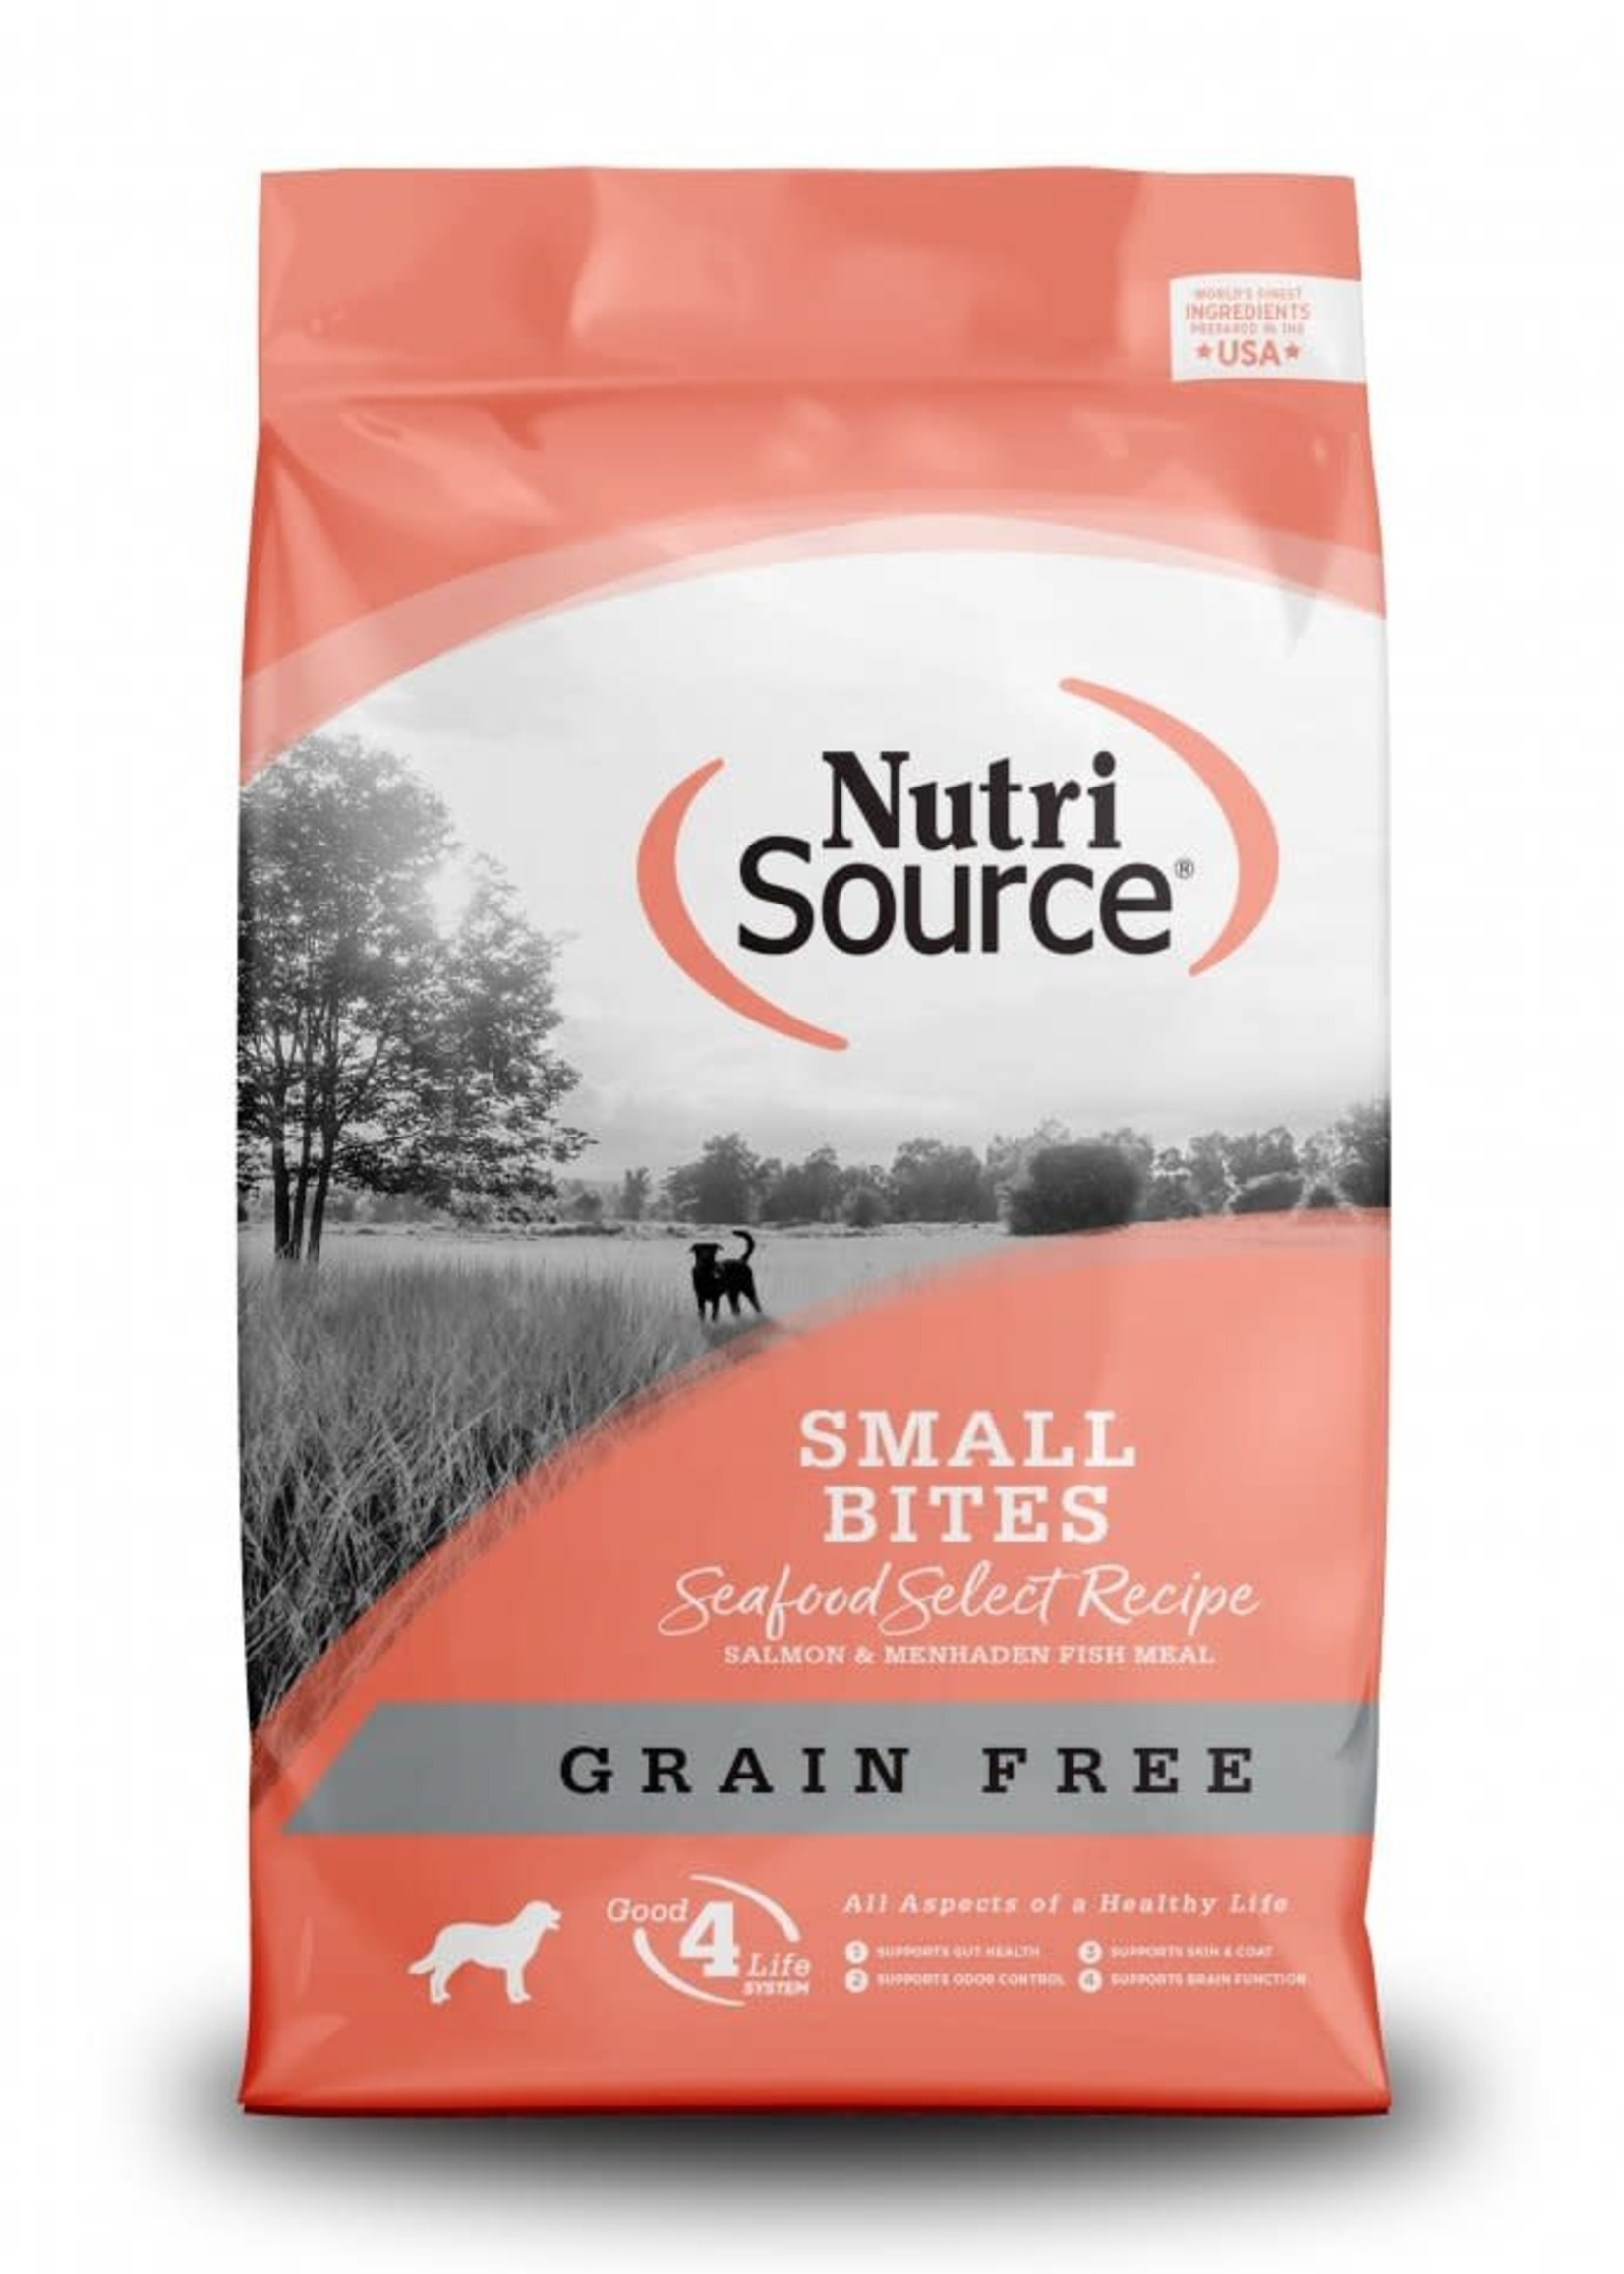 Nutrisource Nutrisource Grain-Free Seafood Select Small Bites Dry Dog Food 15lbs